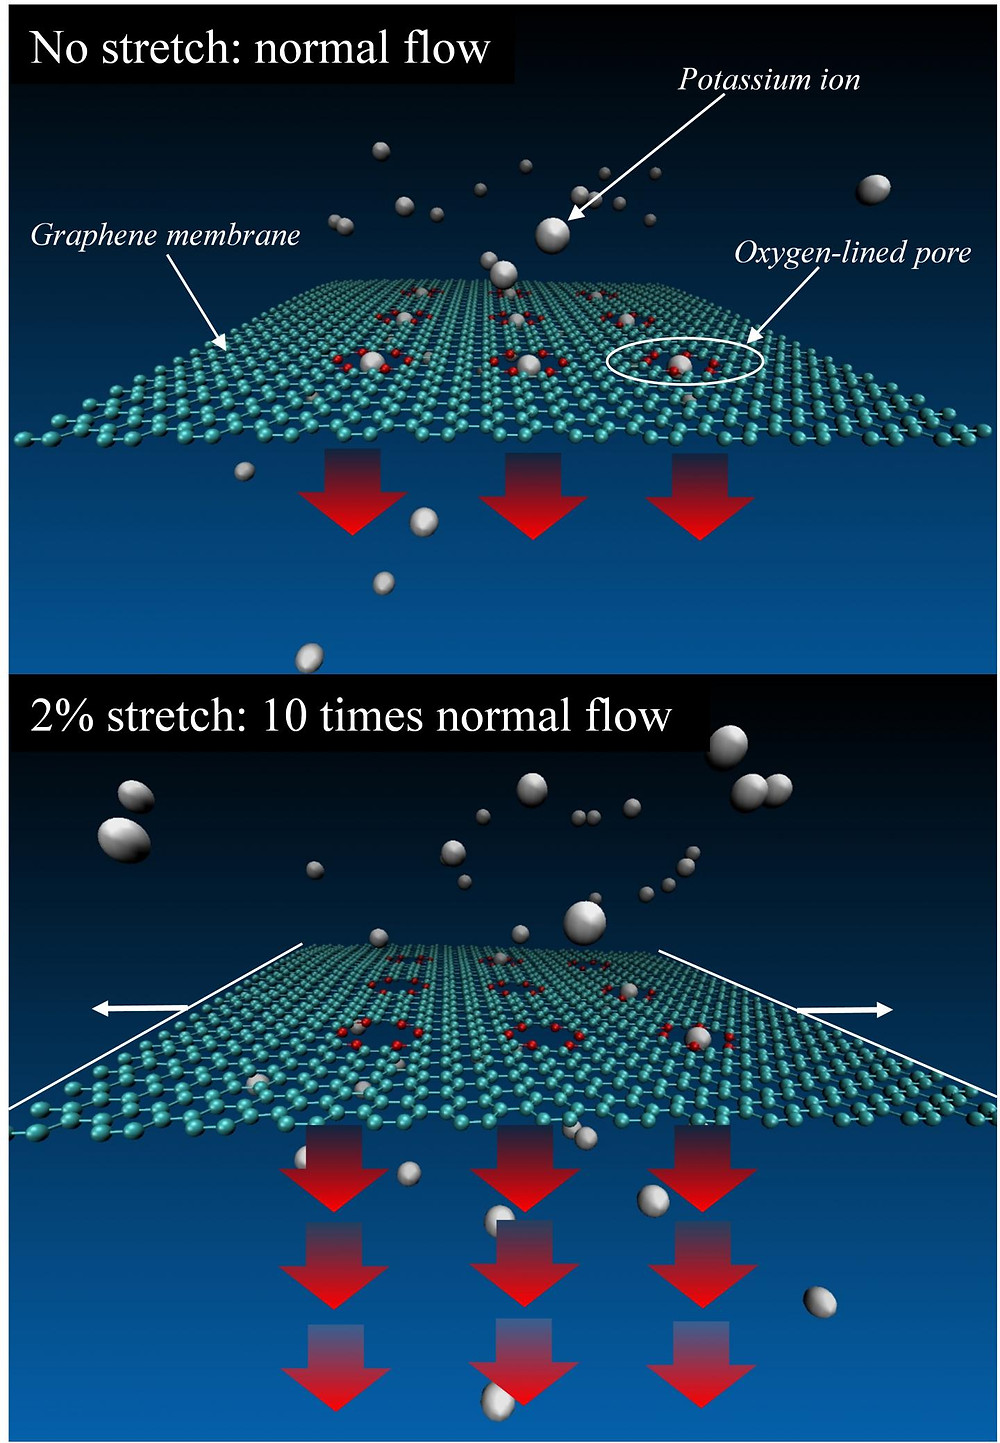 NIST researchers carried out simulations of a graphene membrane featuring oxygen-lined pores and immersed in a liquid solution of potassium ions (charged atoms), which under certain conditions can be trapped in the pores. Slight stretching of the graphene greatly increases the flow of ions through the pores.  @ NIST